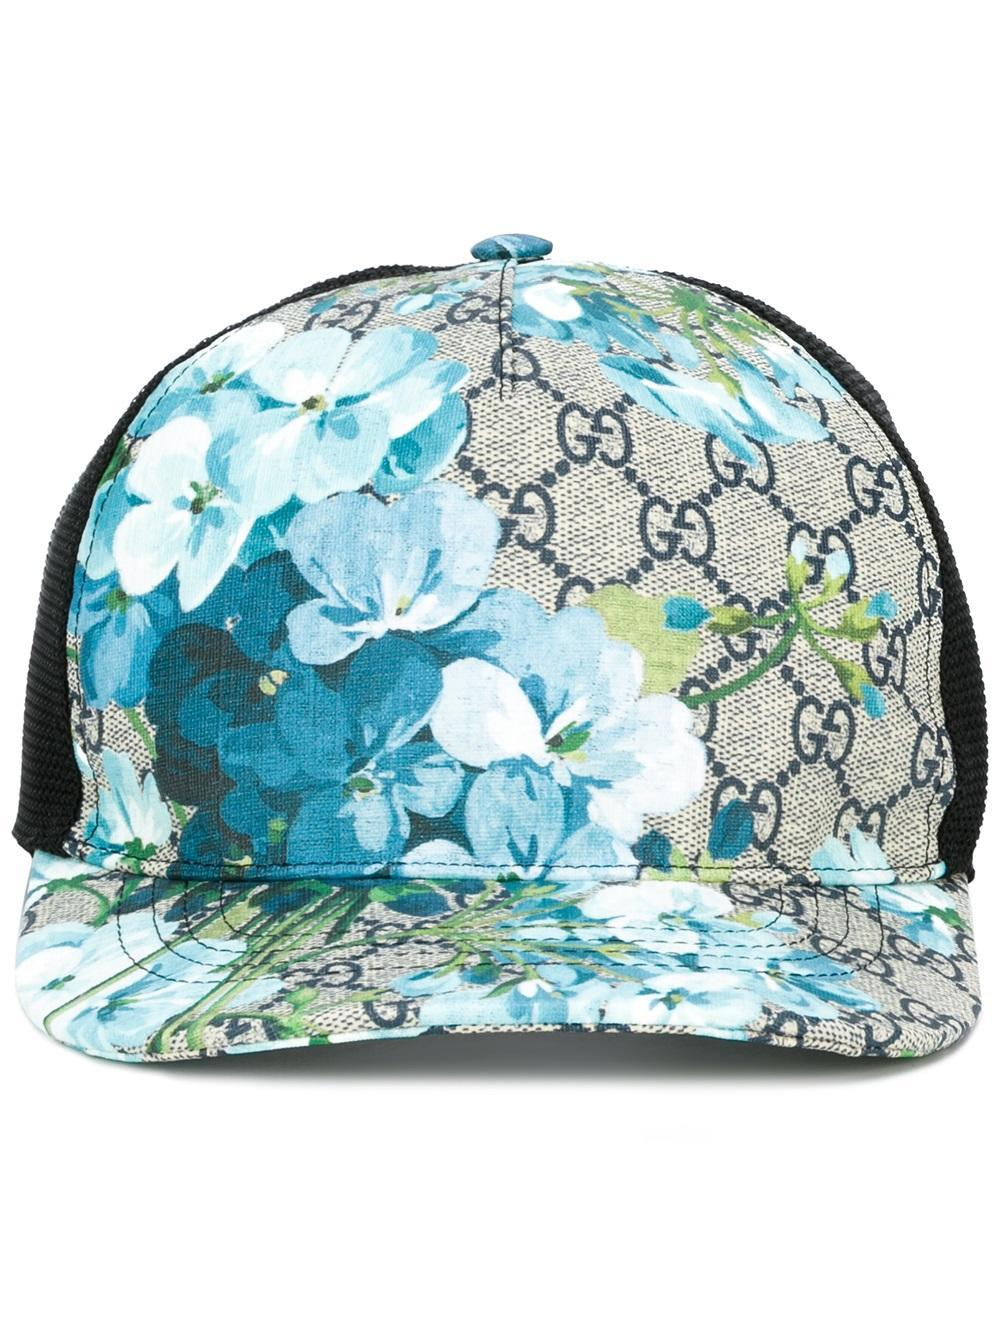 9298a2fd8f8 Gallery. Previously sold at  Farfetch · Men s Baseball Caps ...